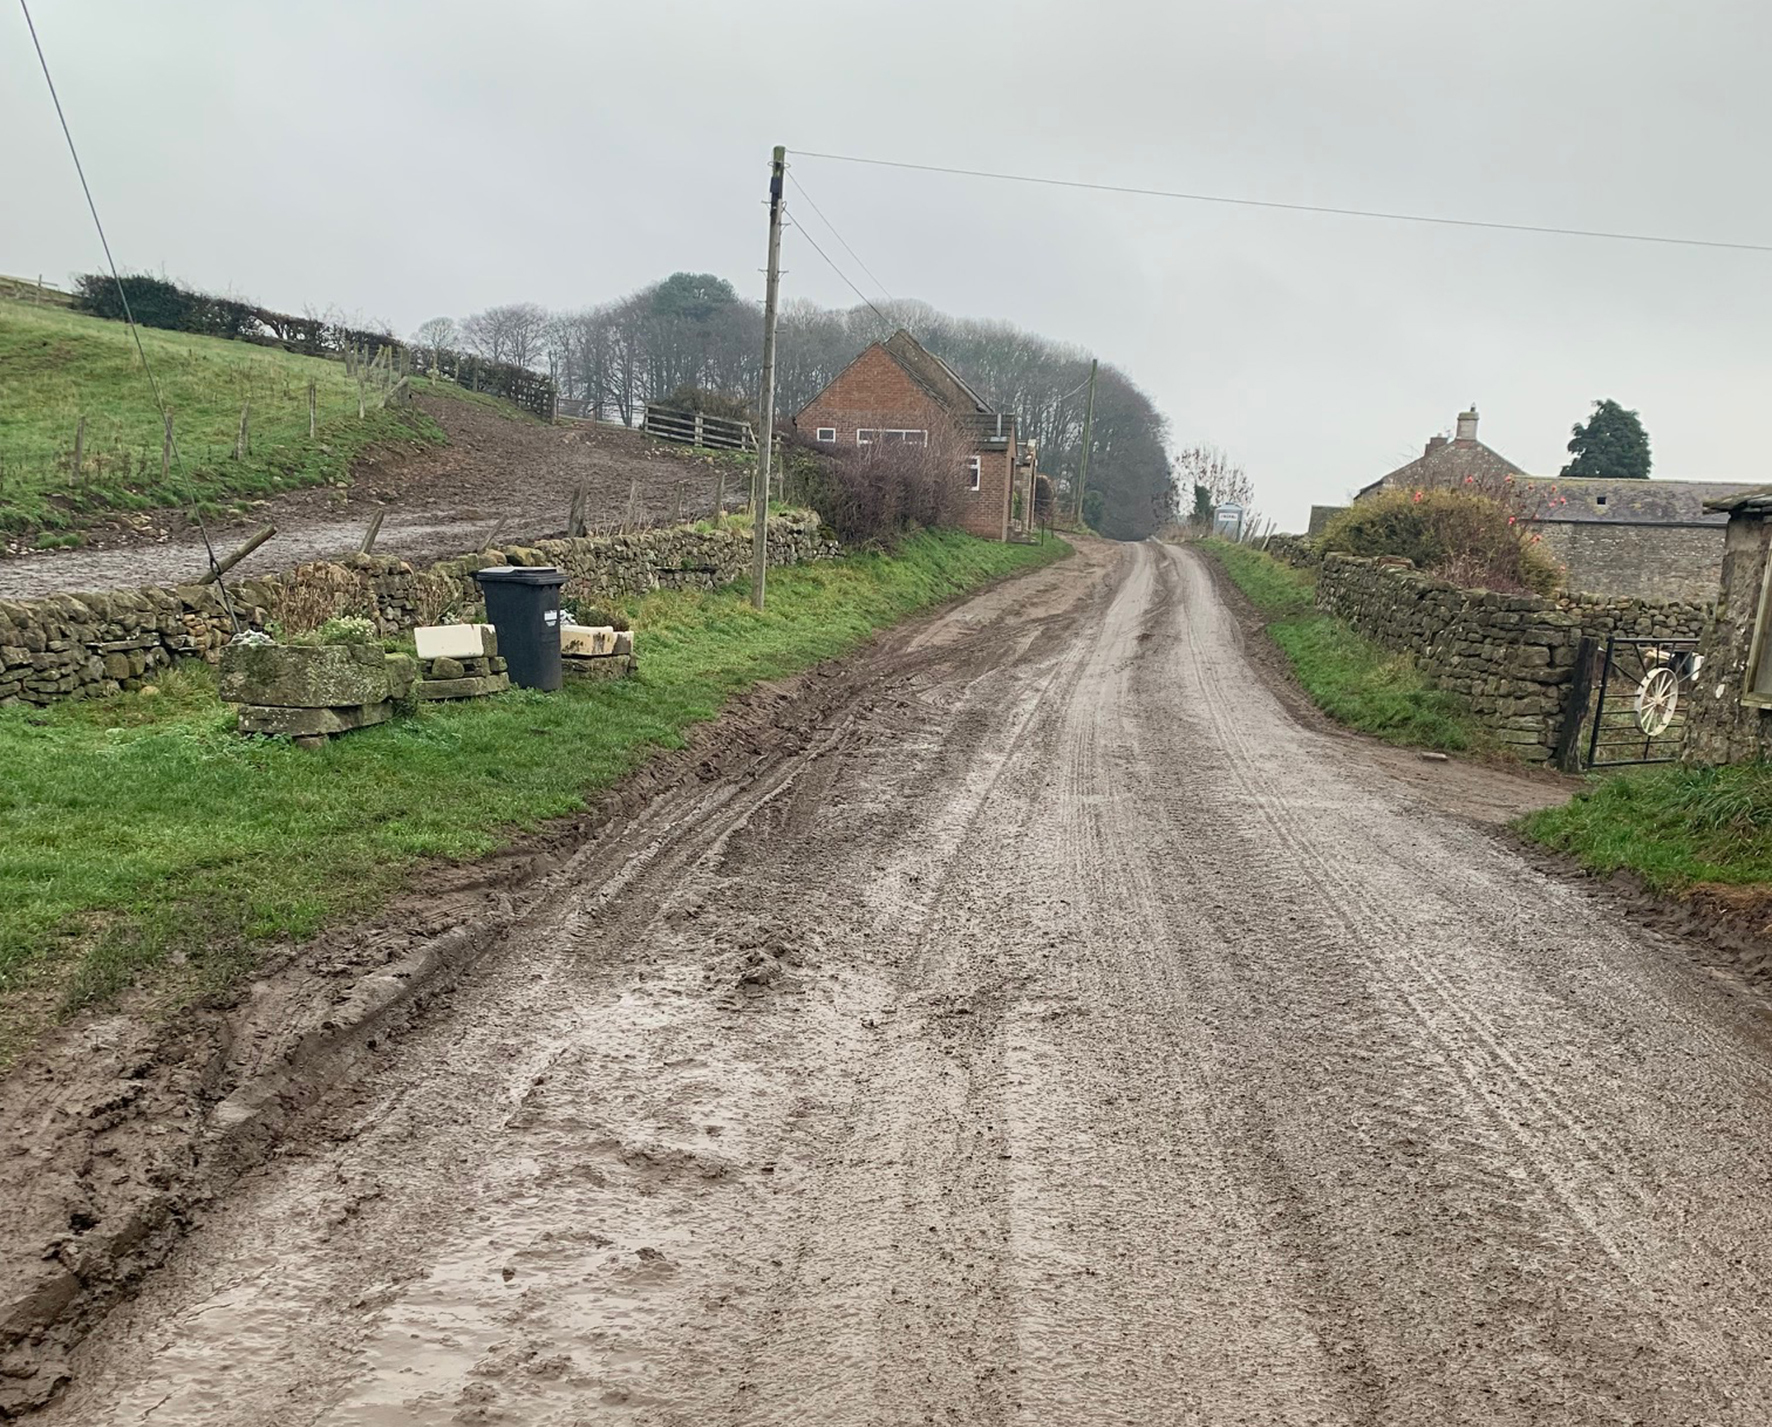 Mud on the roads has sparked safety fears